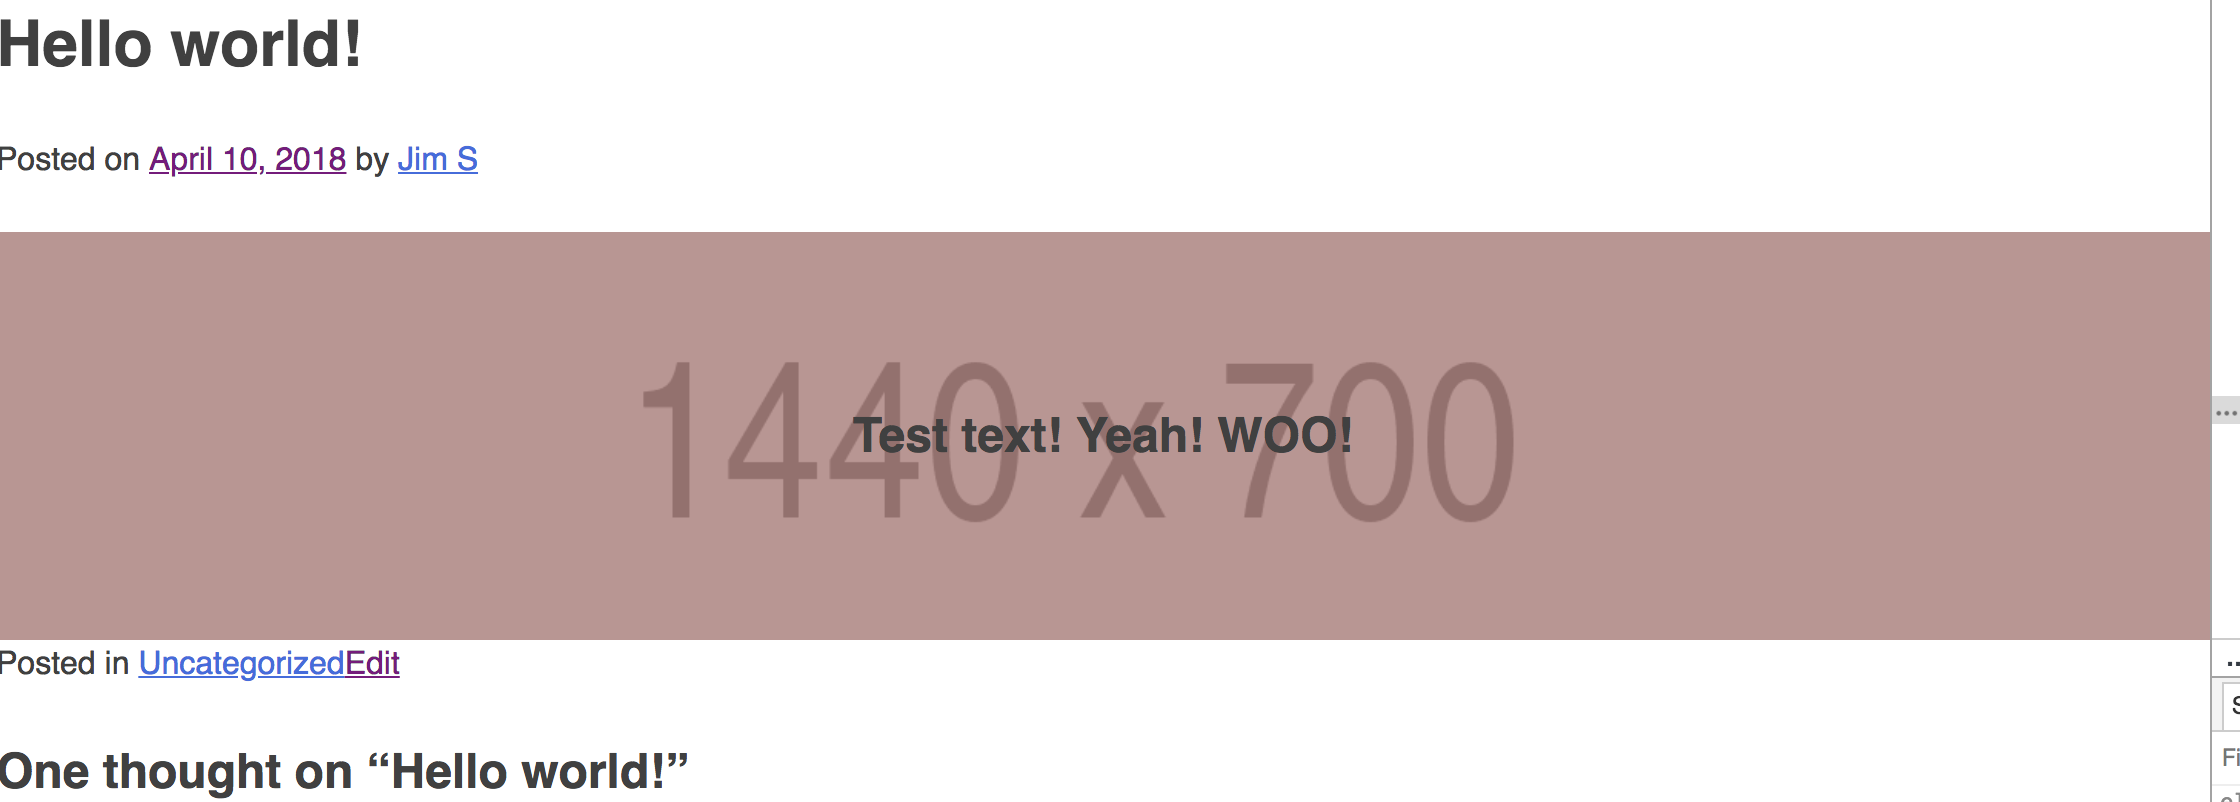 The hero image block has a transparent overlay and properly positioned text.